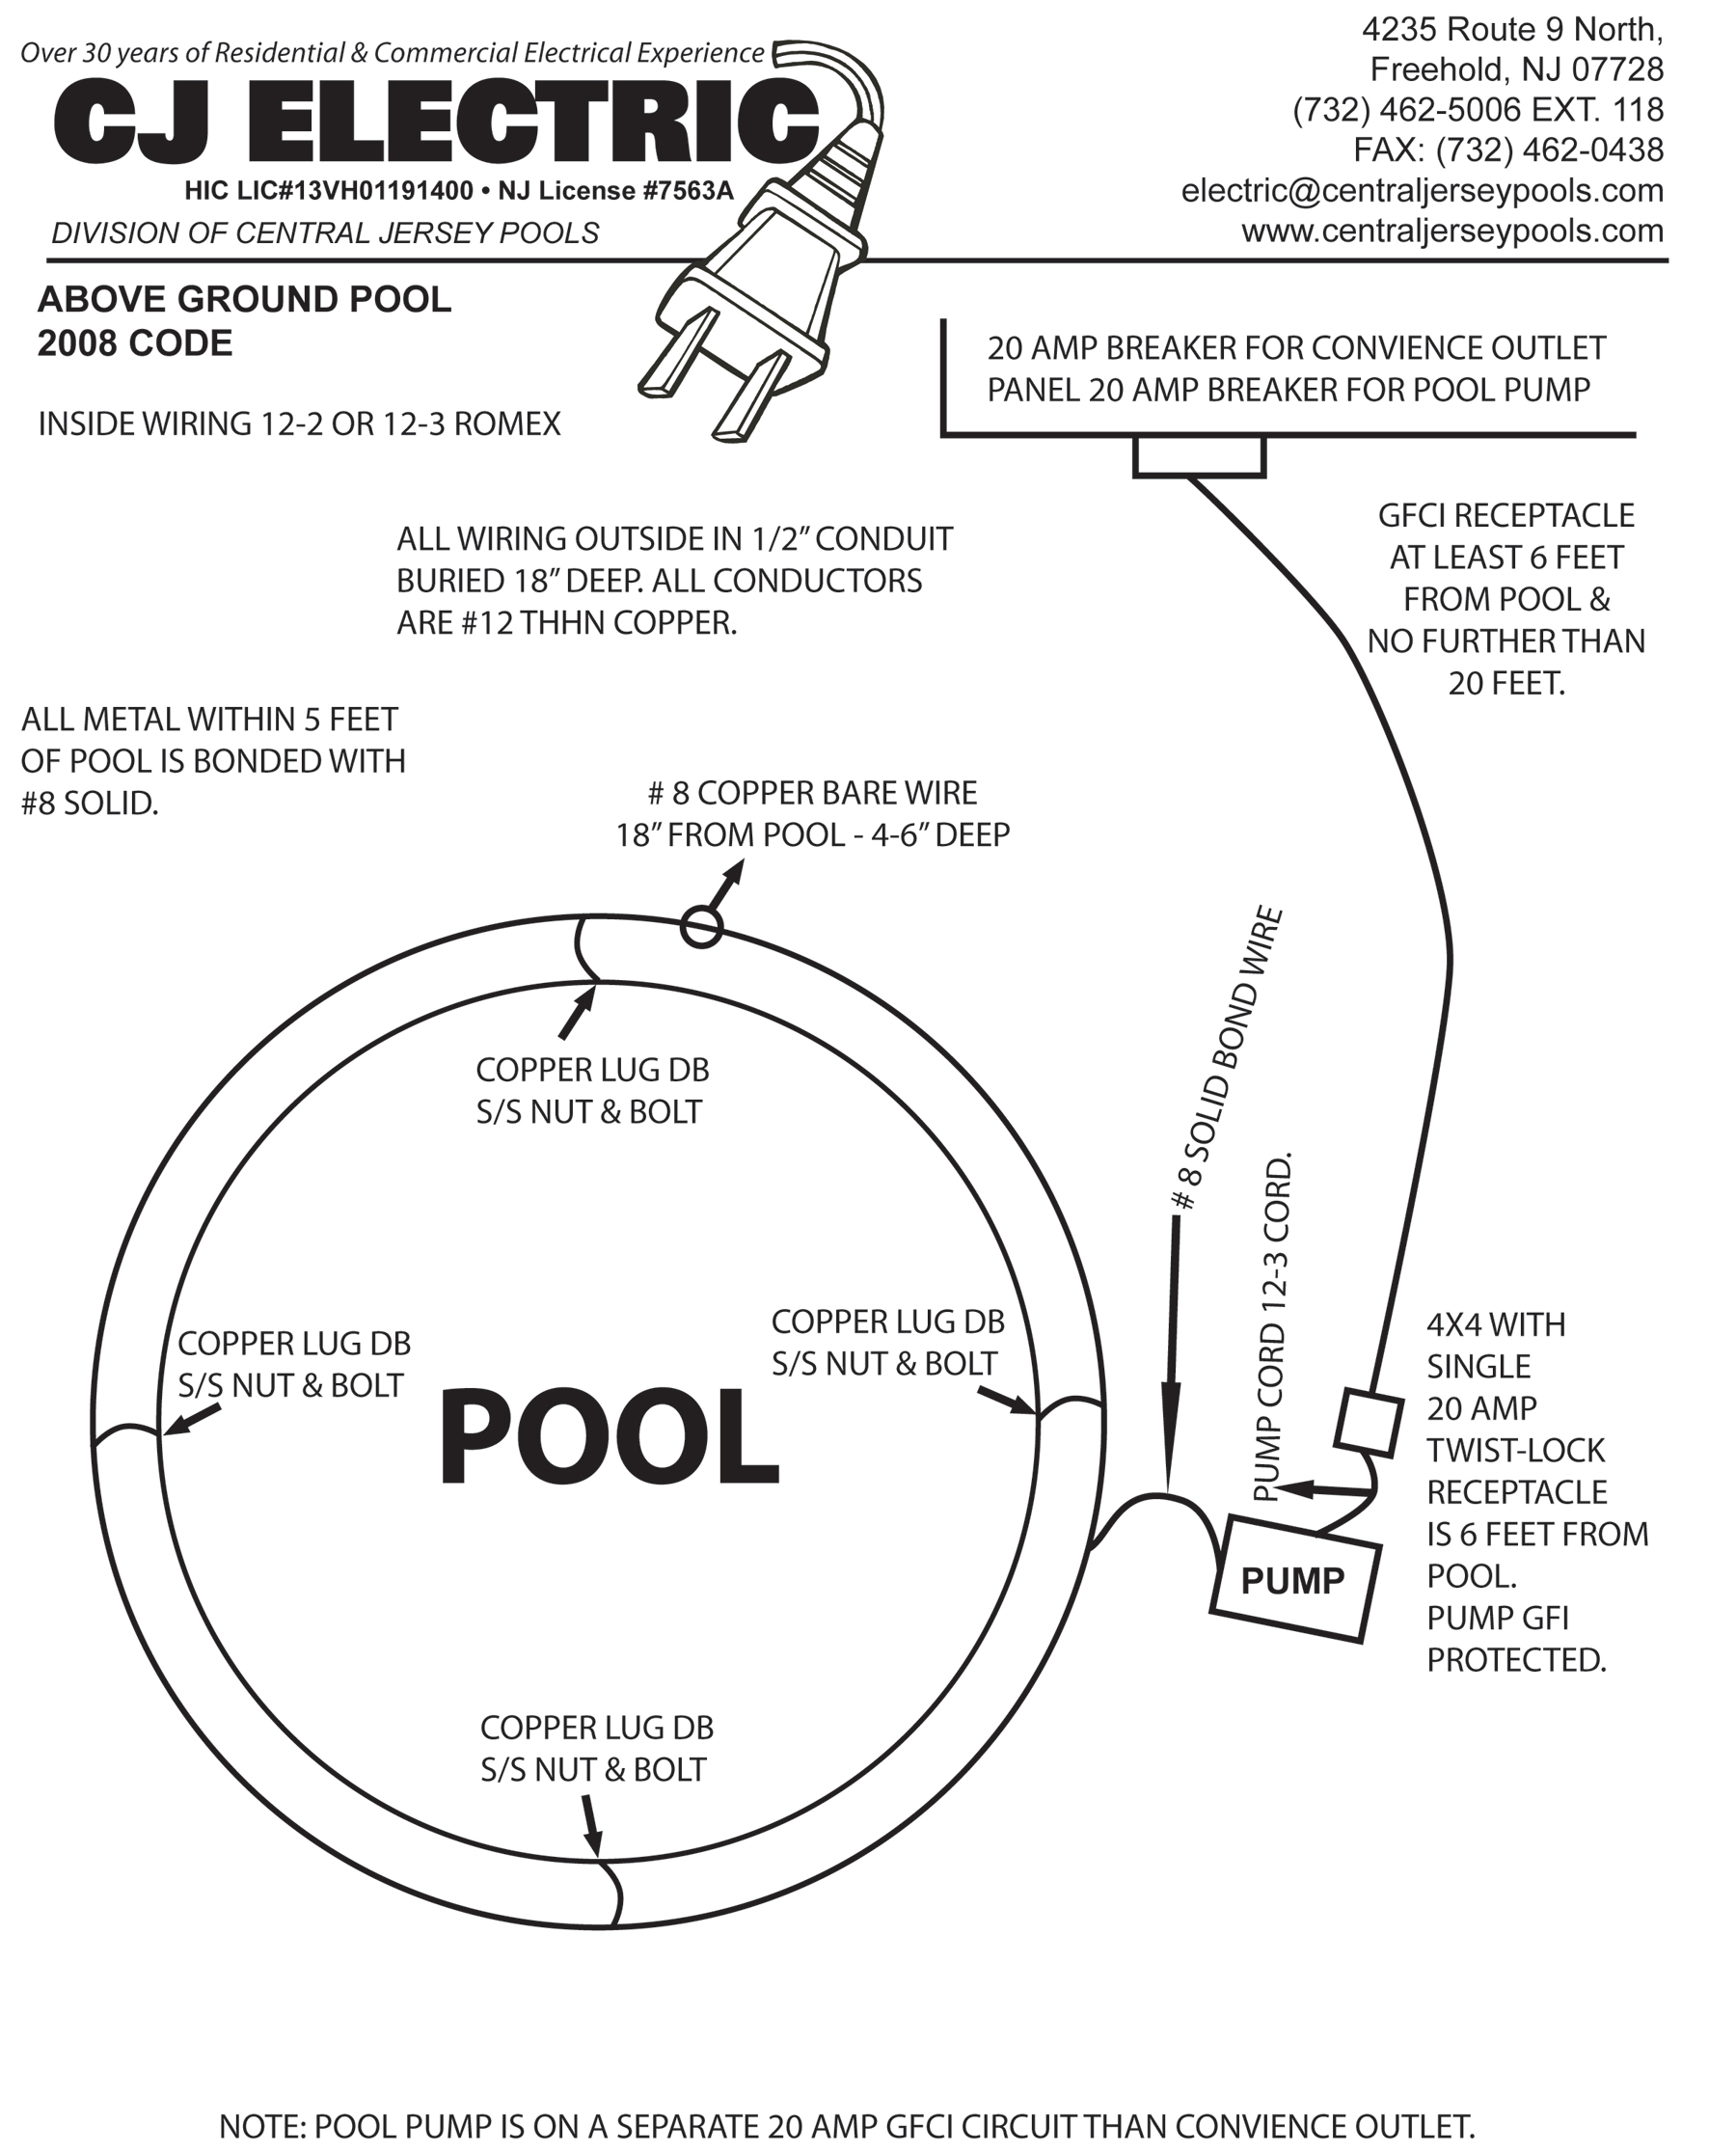 Above Ground Pool Wiring Diagram : 32 Wiring Diagram